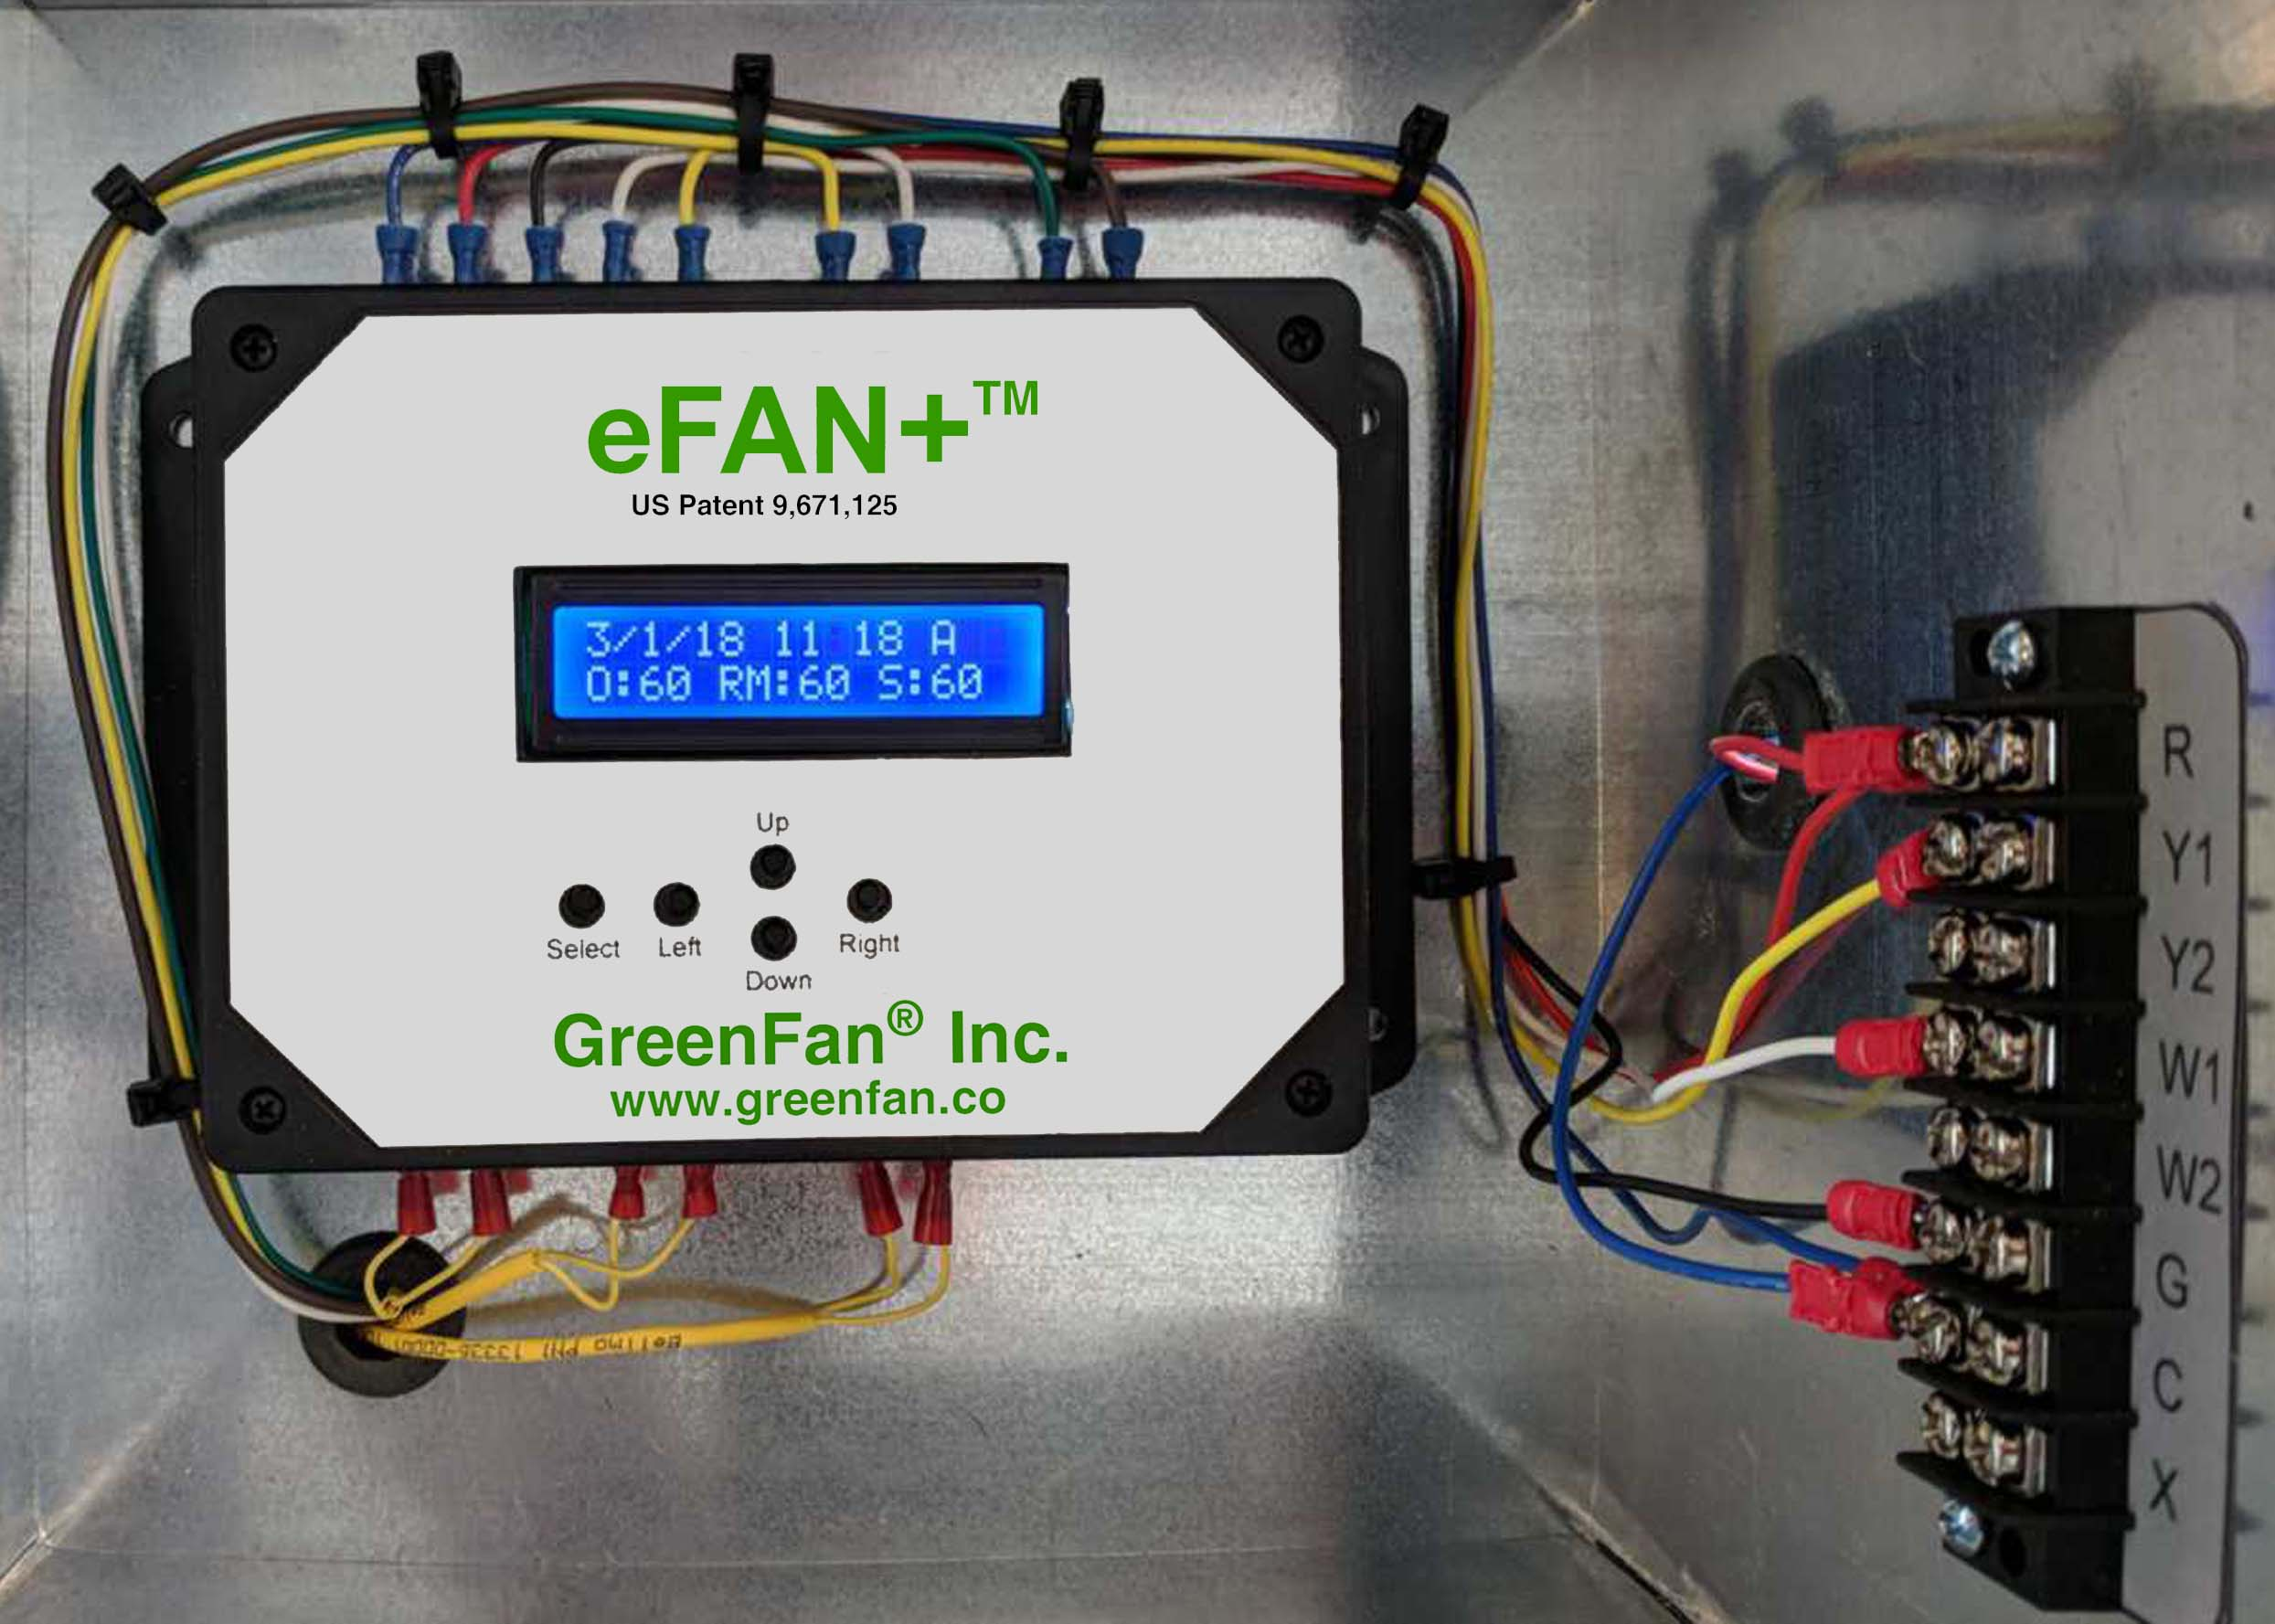 eFAN+™ Advanced Economizer Controller - Provides Advanced Fault Detection Diagnostics and saves 14 to 30% on cooling and heating energy use